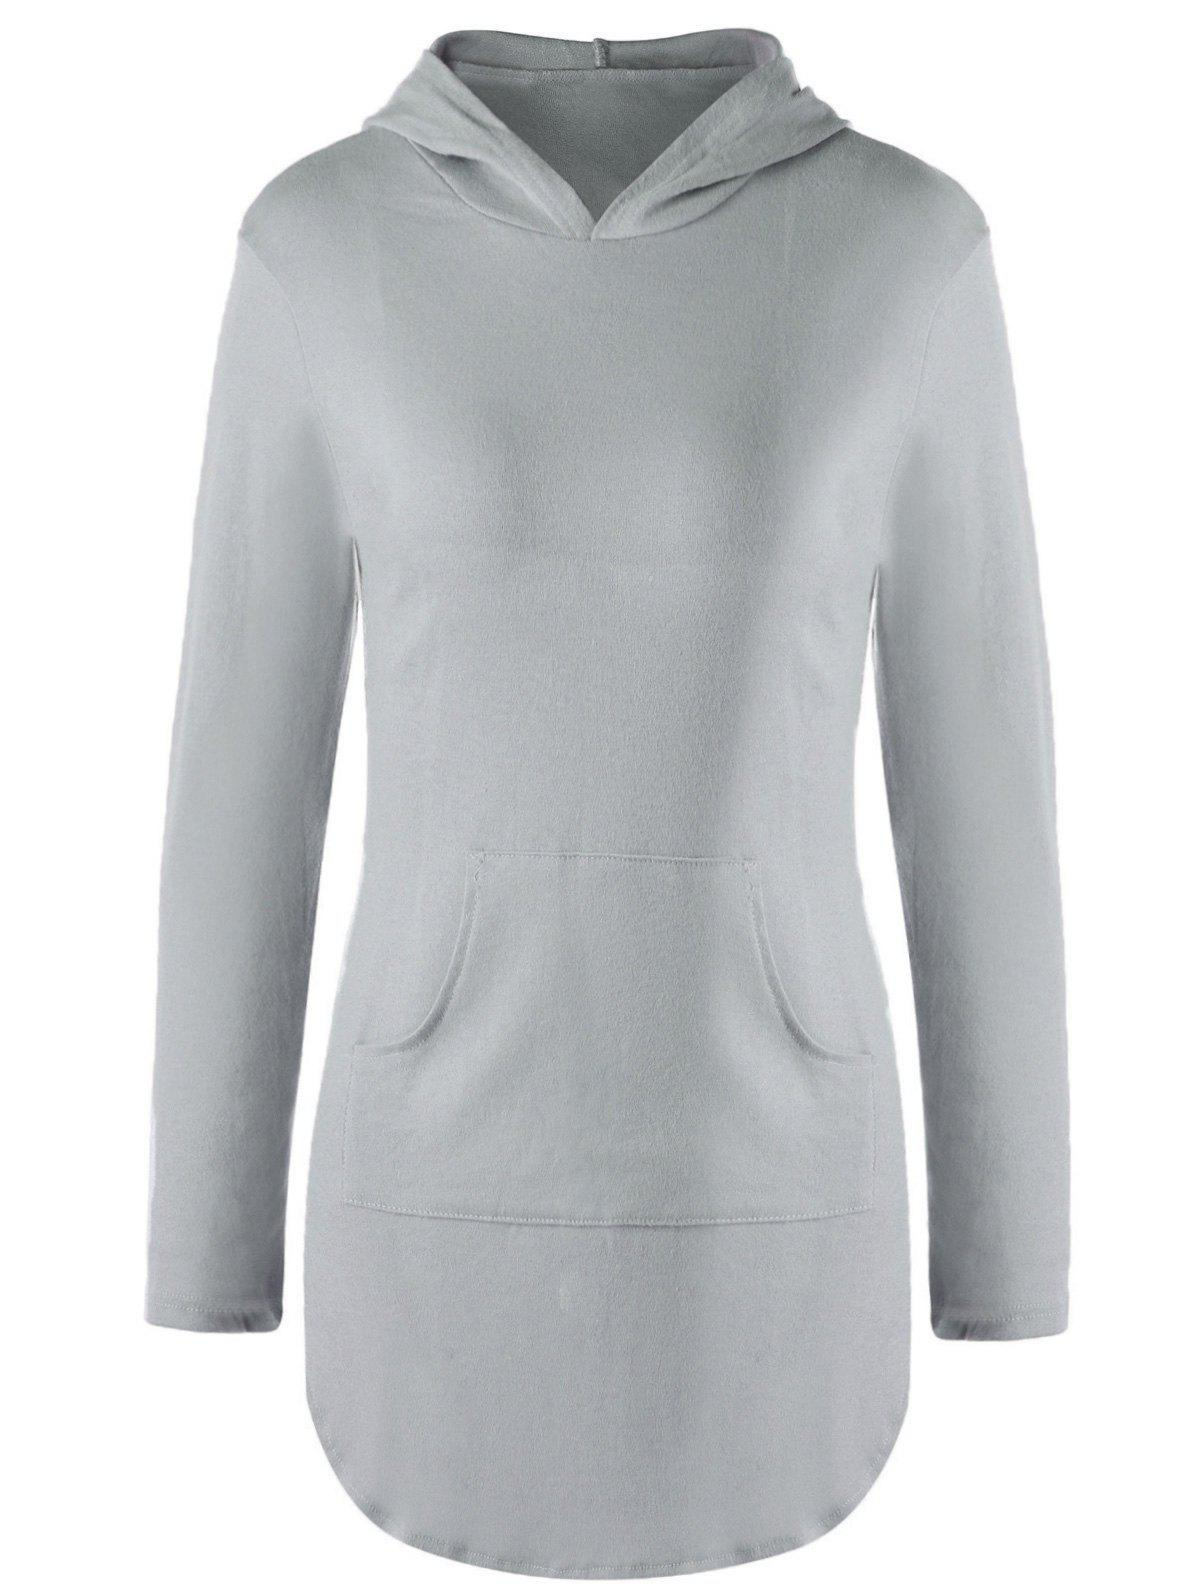 Stylish Solid Color Pocket Design Hooded Long Sleeve T-Shirt For Women - GRAY M